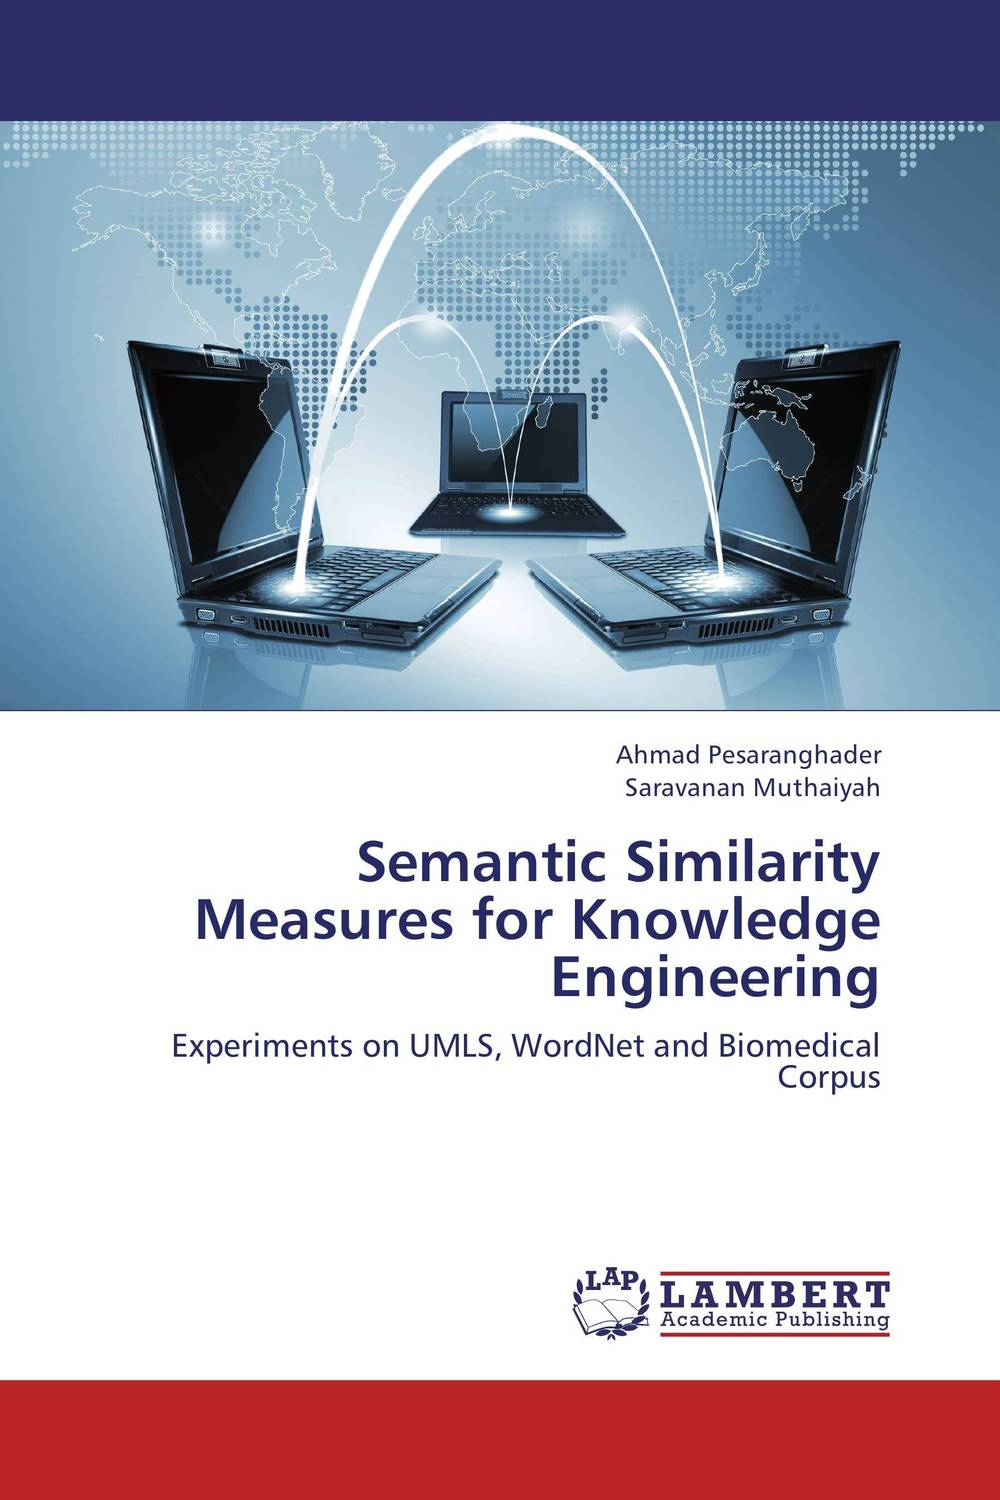 Semantic Similarity Measures for Knowledge Engineering clustering information entities based on statistical methods